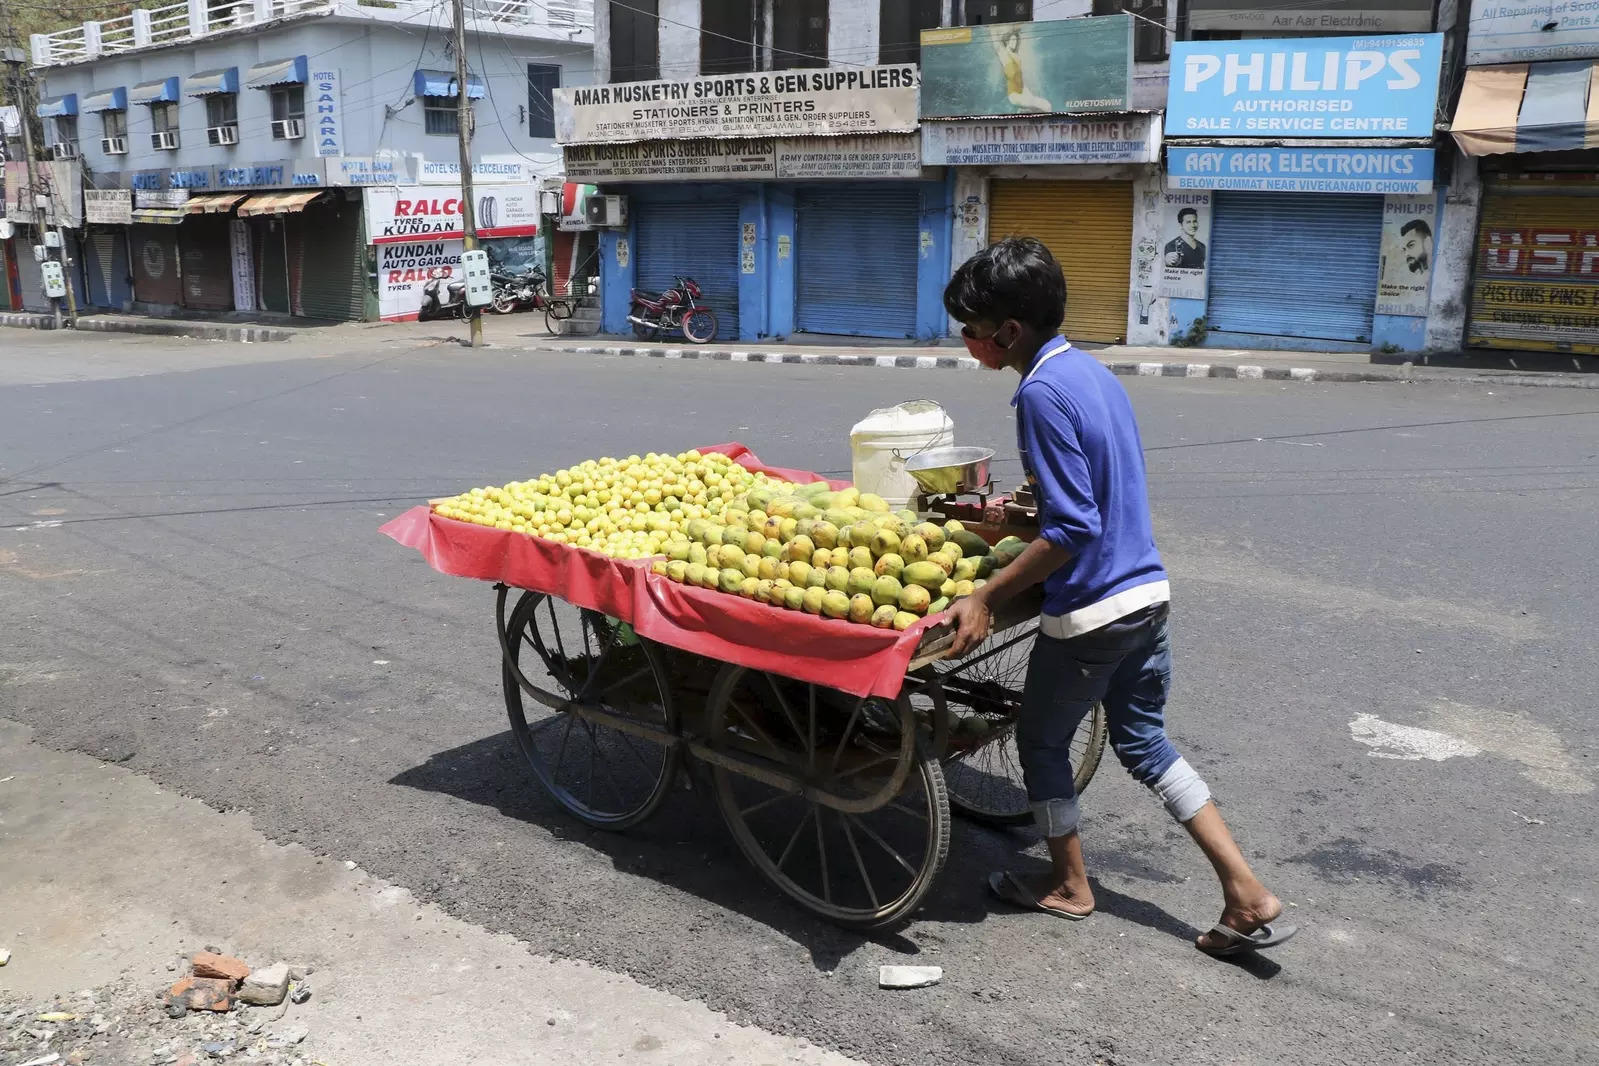 Jammu: A fruit vendor pushes his cart through a deserted market area as he searches for customers, during COVID-induced weekend lockdown in Jammu. (PTI Photo)(